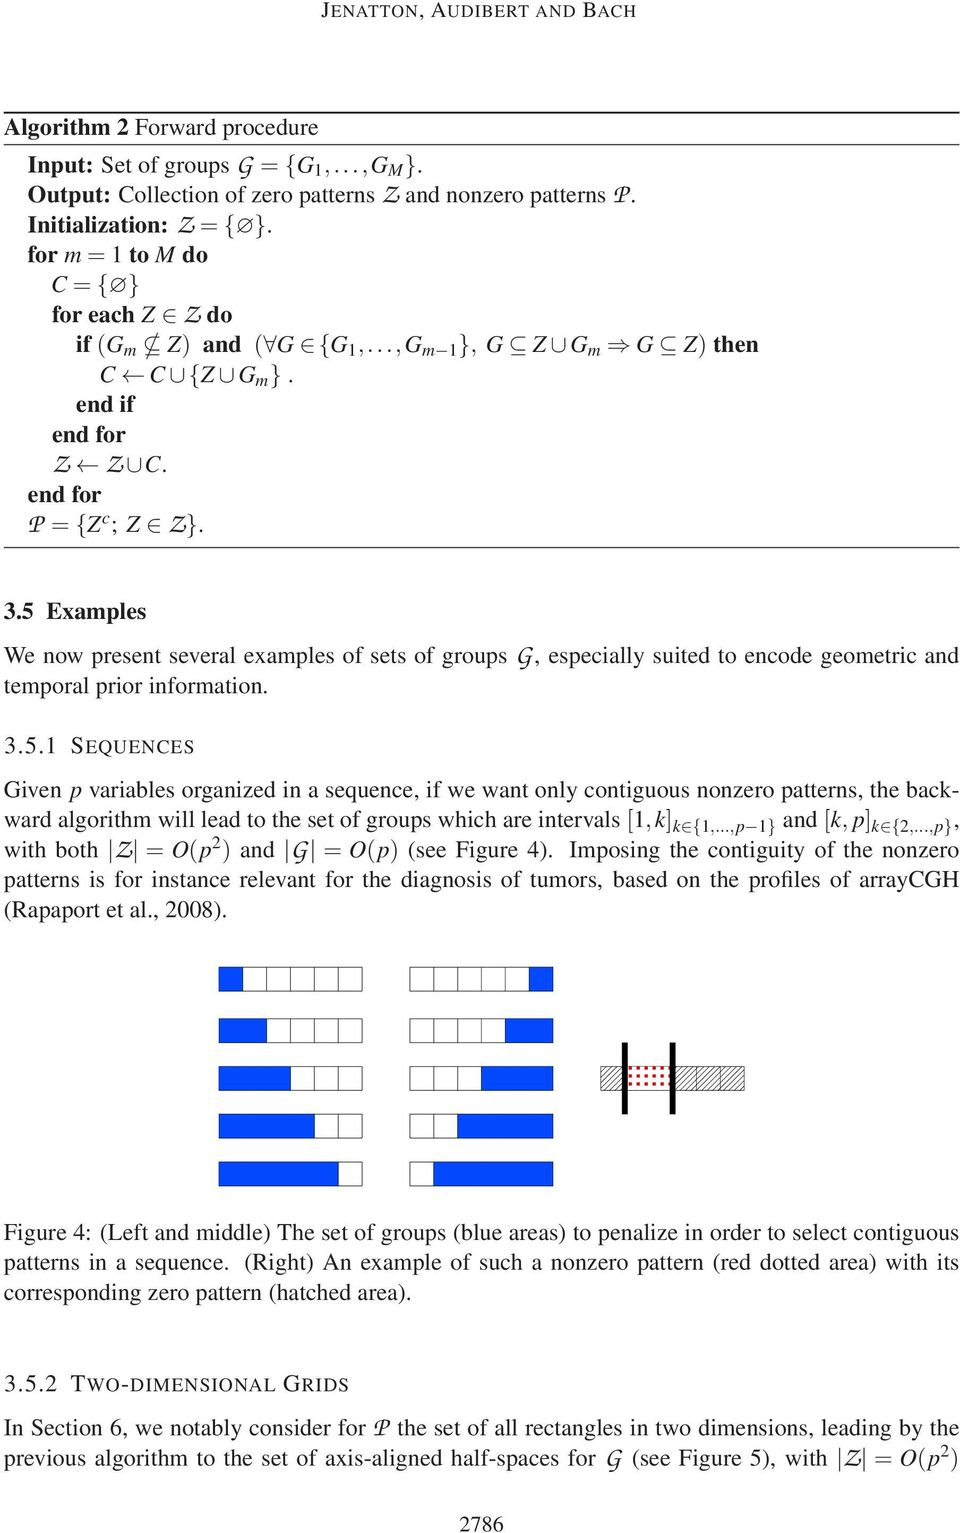 5 Examples We now present several examples of sets of groups G, especially suited to encode geometric and temporal prior information. 3.5.1 SEQUENCES Given p variables organized in a sequence, if we want only contiguous nonzero patterns, the backward algorithm will lead to the set of groups which are intervals[1,k] k {1,.